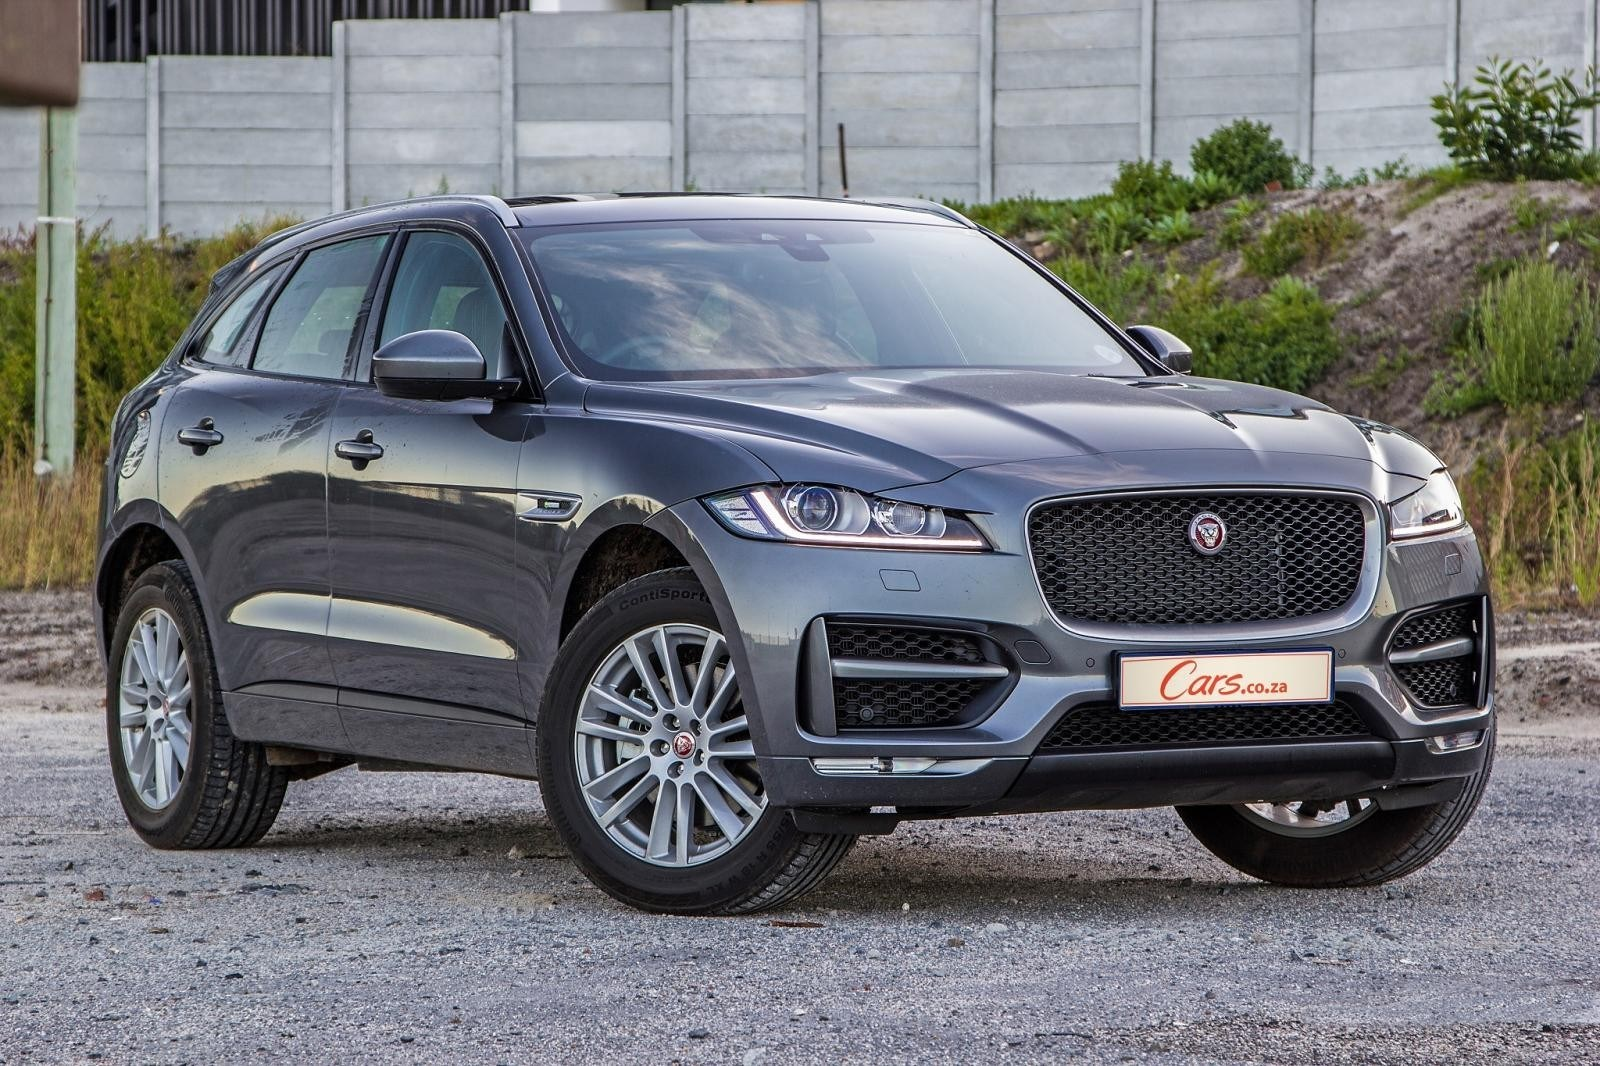 43 New 2019 Jaguar C X17 Crossover History